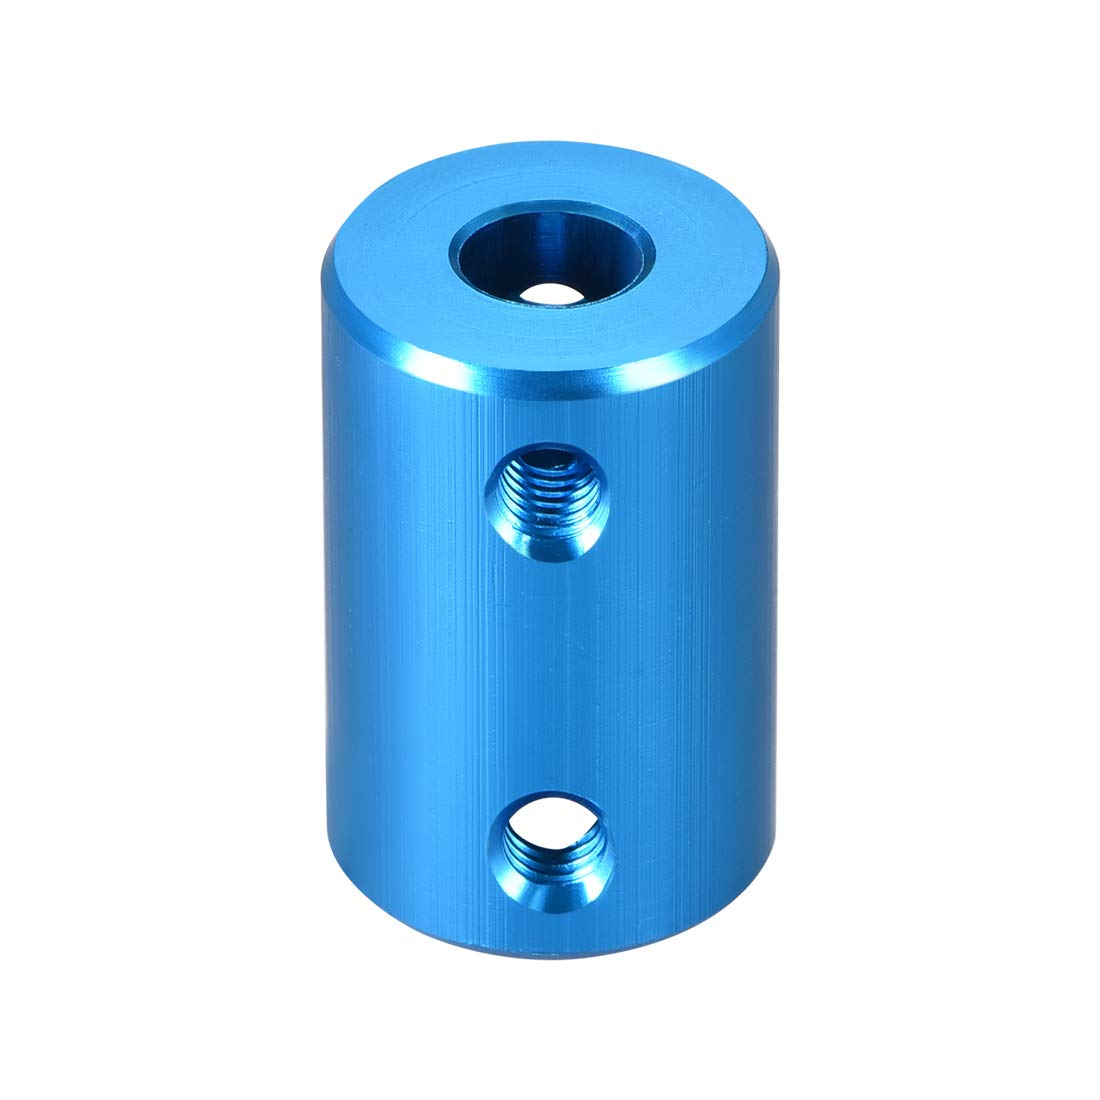 sourcing map Shaft Coupling 6mm to 8mm Bore L25xD14 Robot Motor Wheel Rigid Coupler Connector Blue